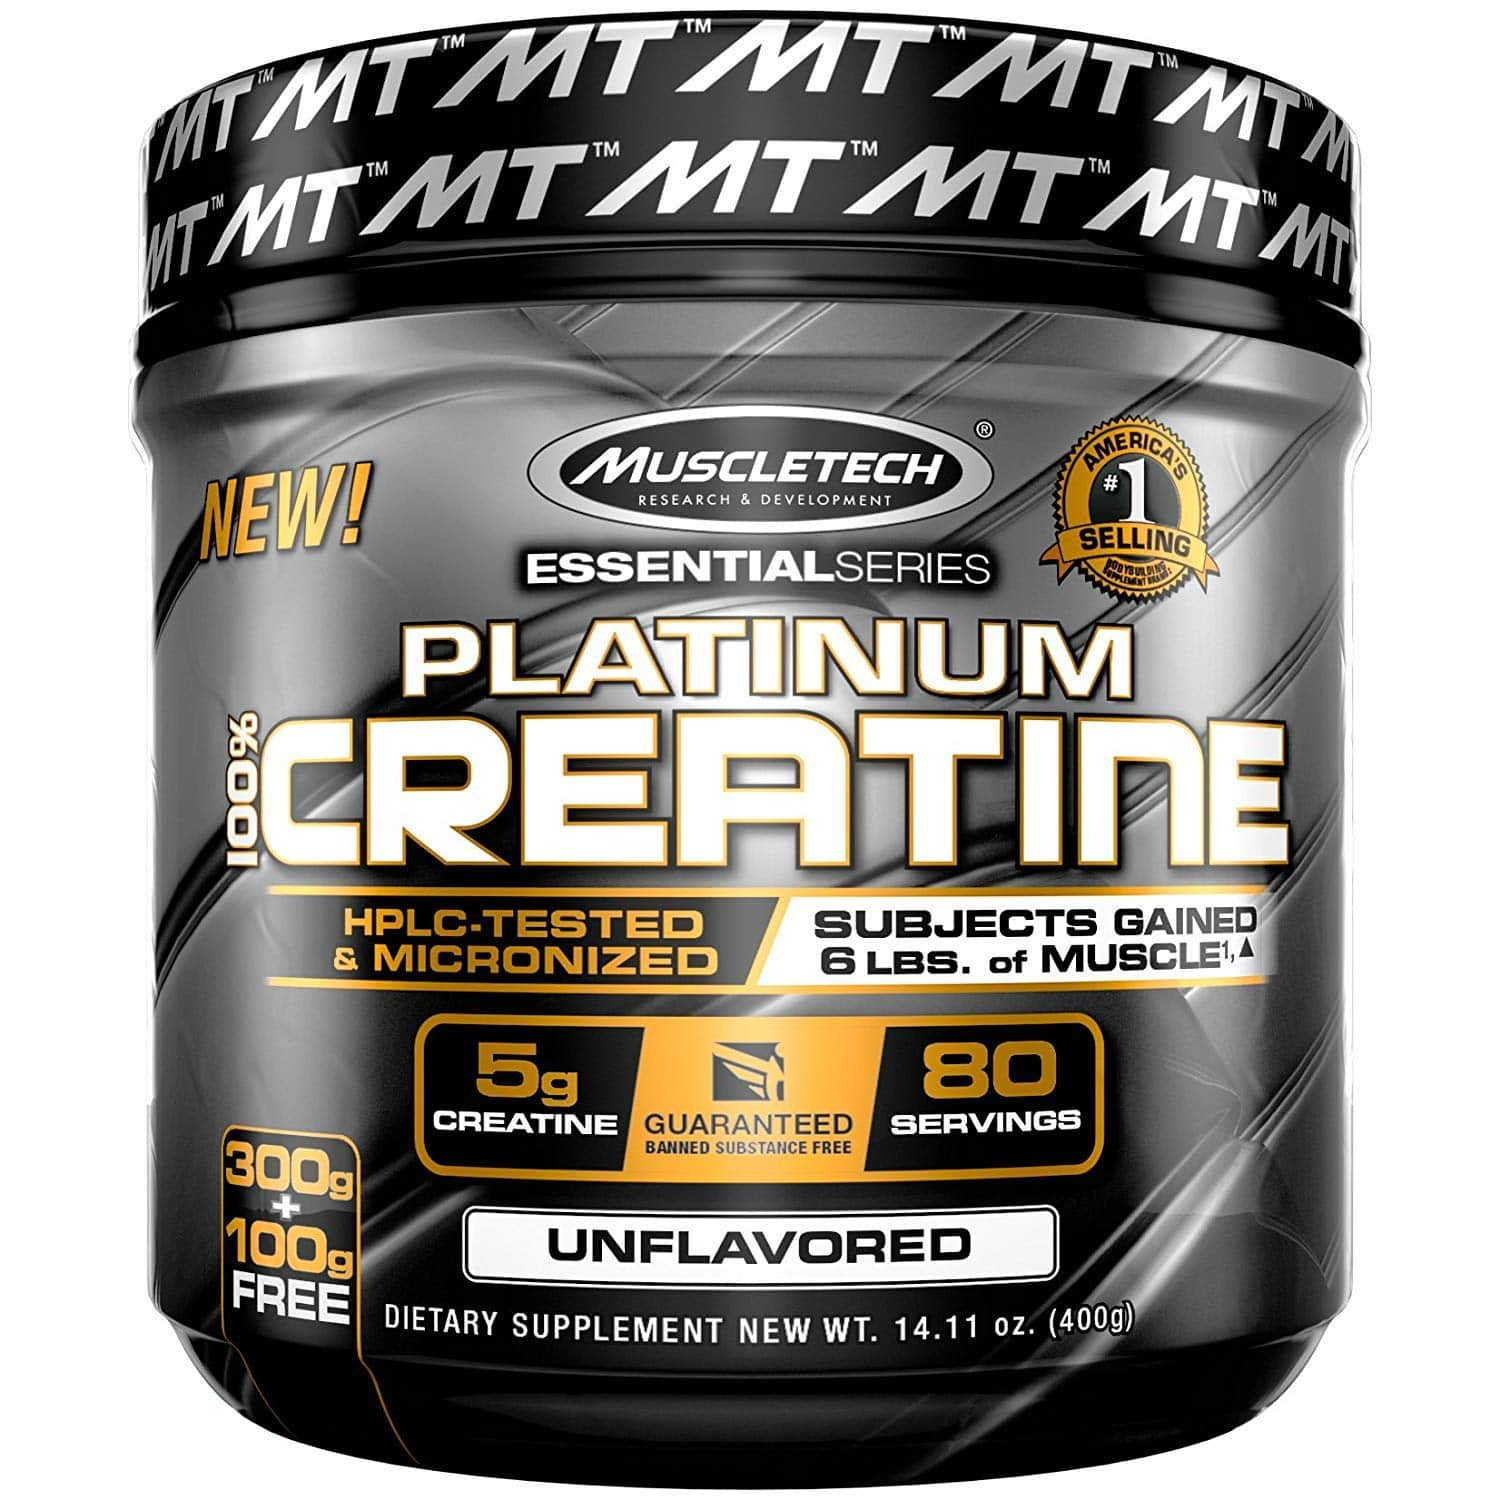 MuscleTech Platinum Creatine, $7.10 after 5% coupon